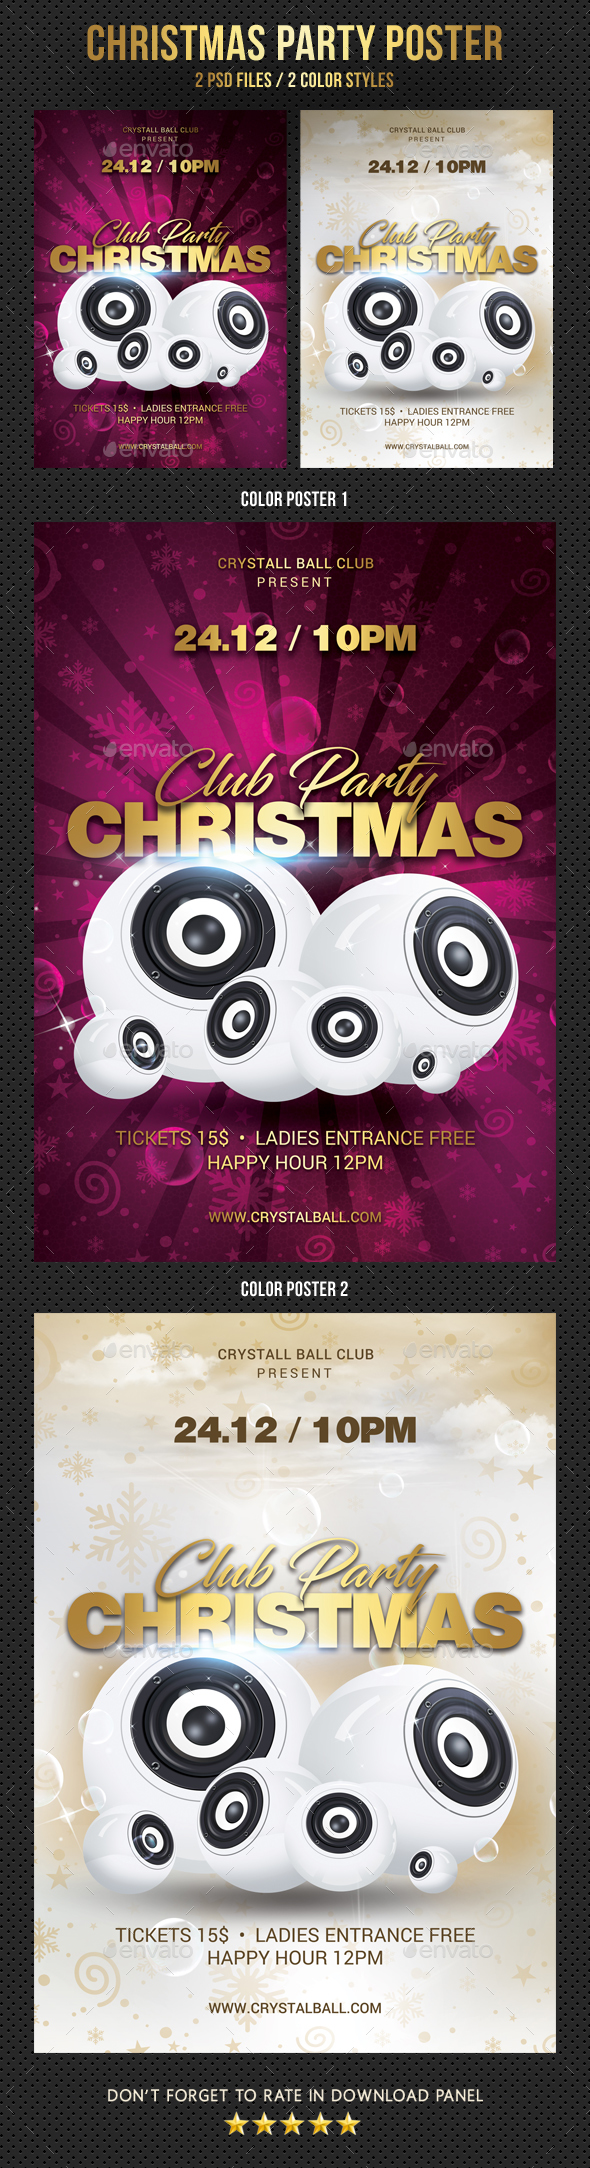 Christmas Club Party Poster - Signage Print Templates